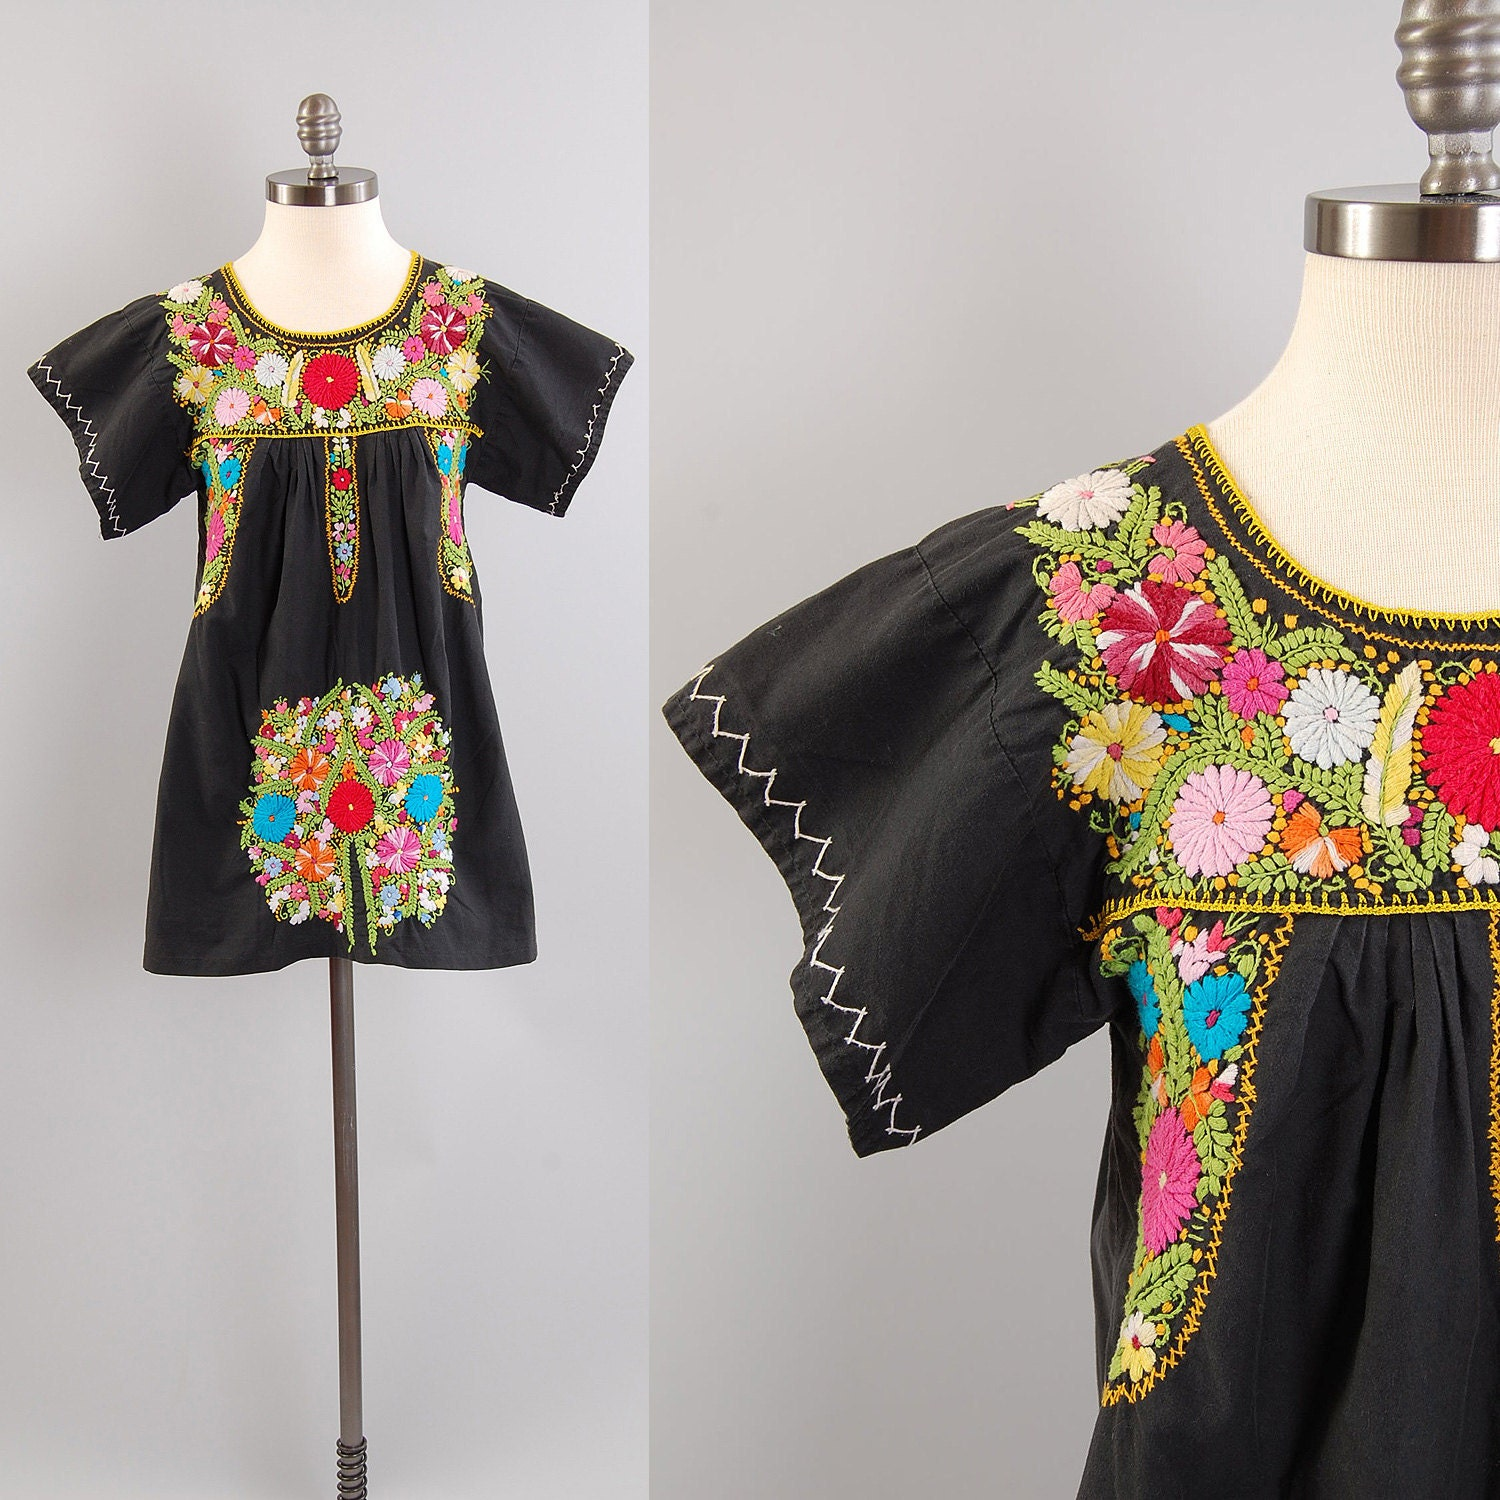 S black mexican embroidered mini tunic dress or top